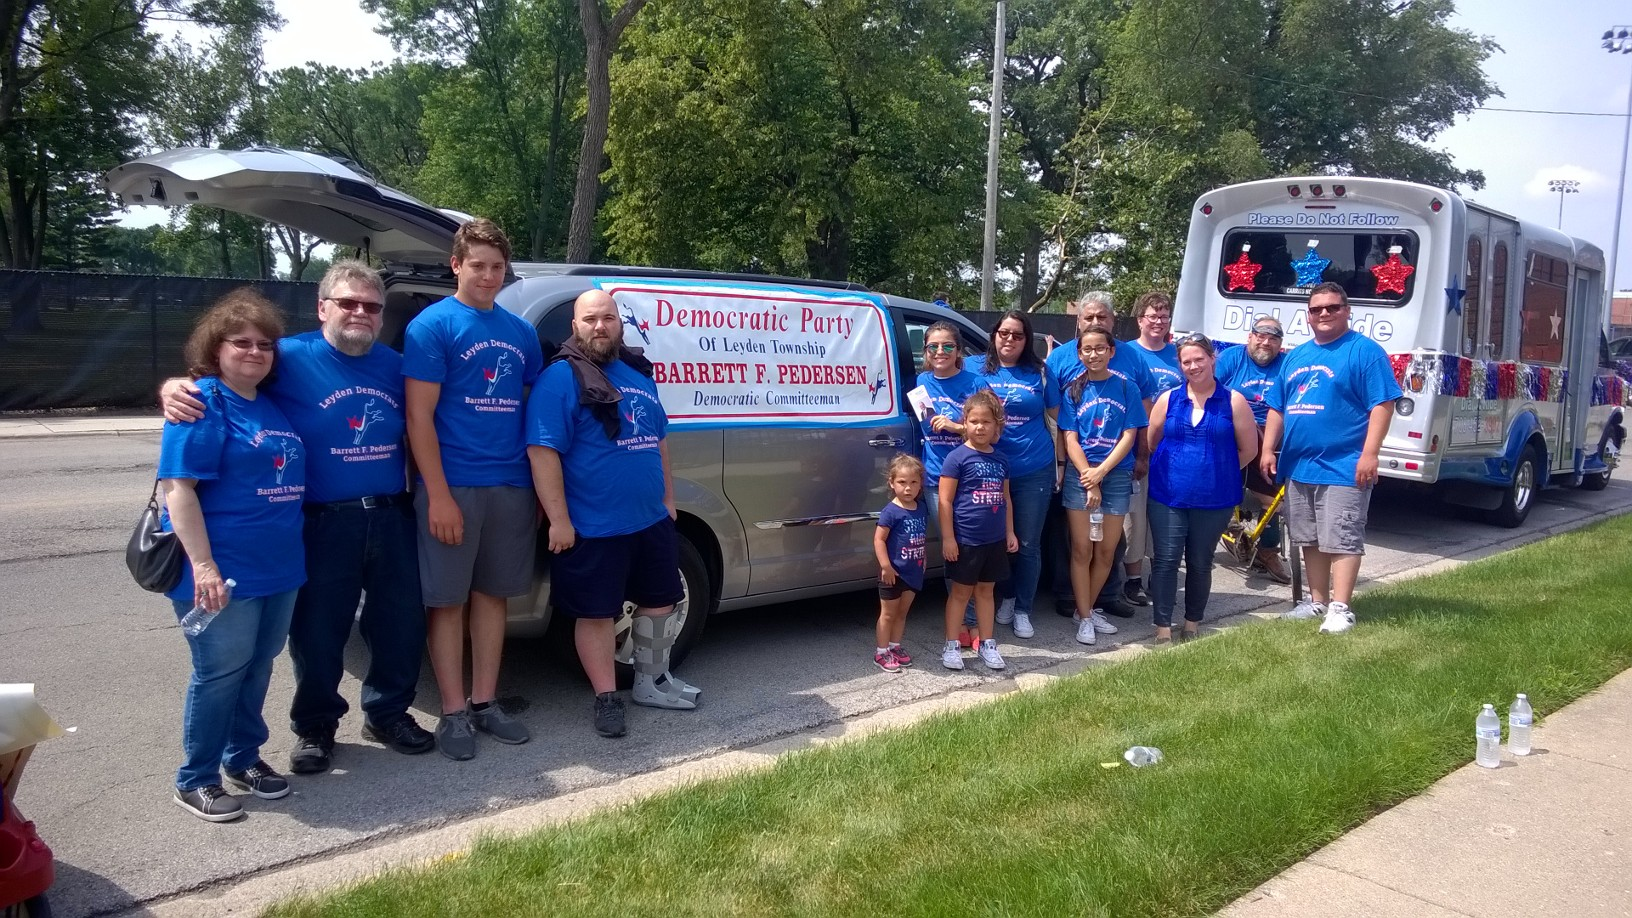 Elmwood Park 4th of July Parade